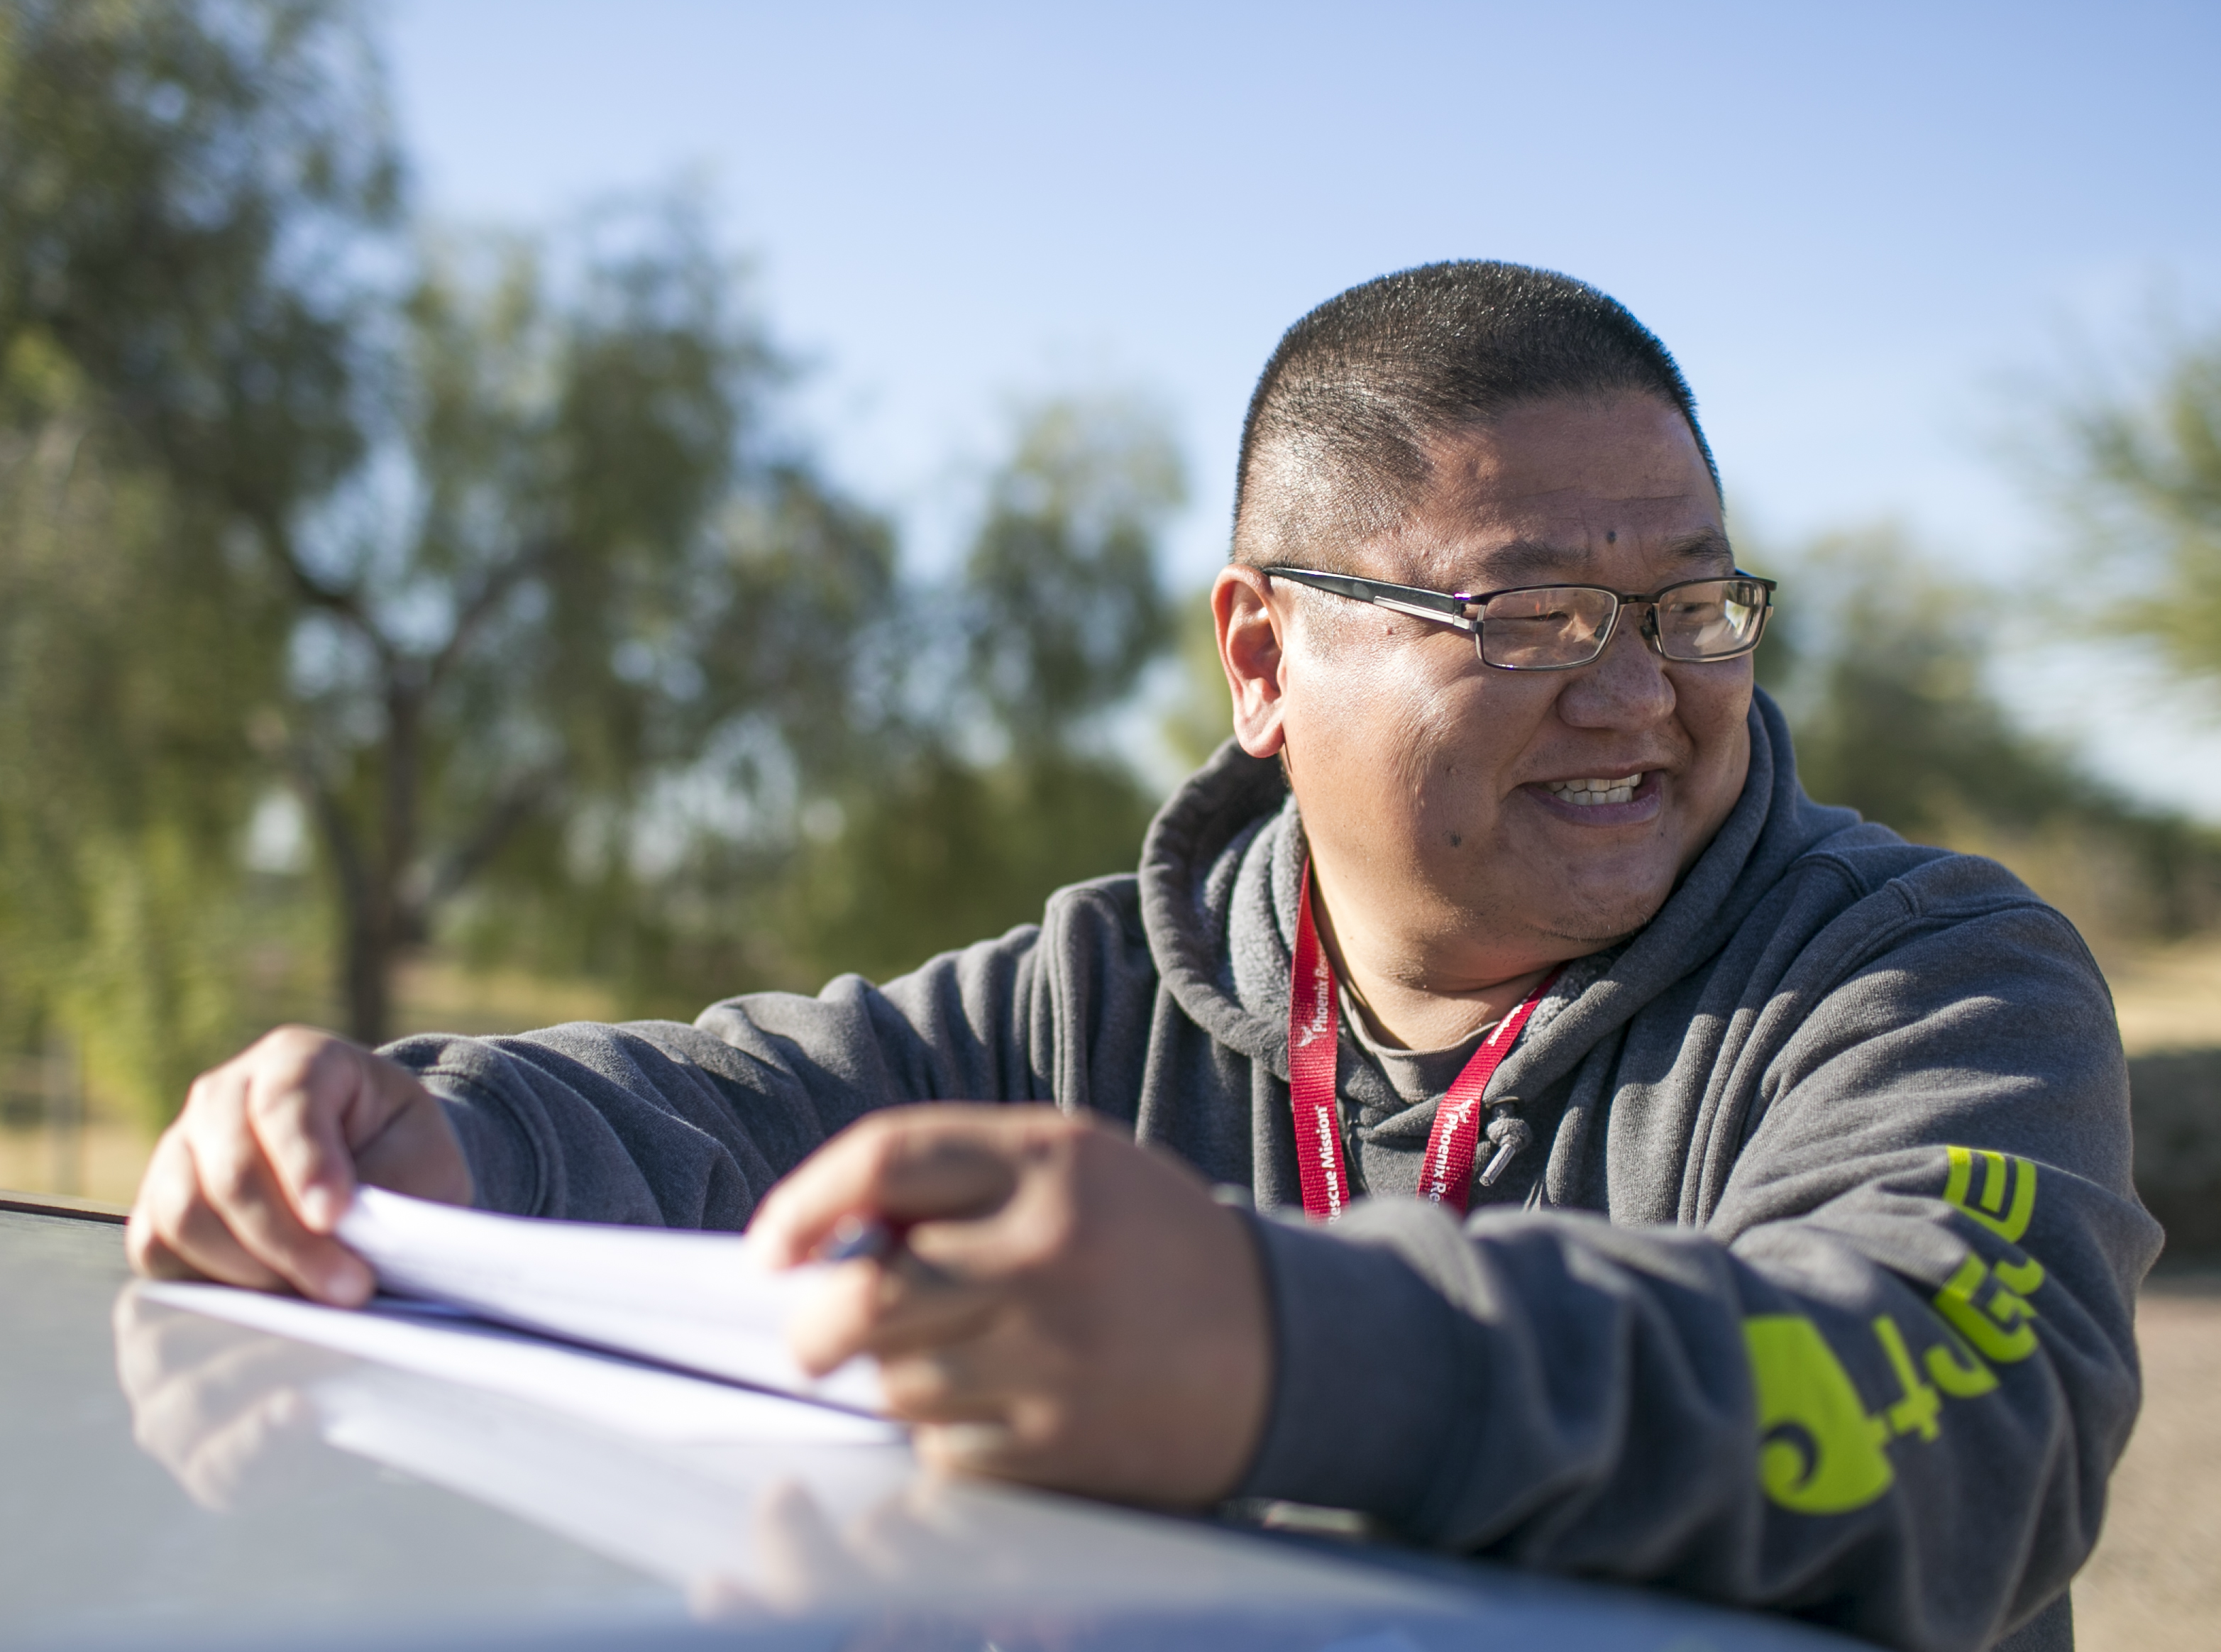 Gabe Priddy, a case manager assistant with Phoenix Rescue Mission, laughs while consulting with a client at the Glendale Works program on Jan. 7, 2019 in Glendale, Arizona.